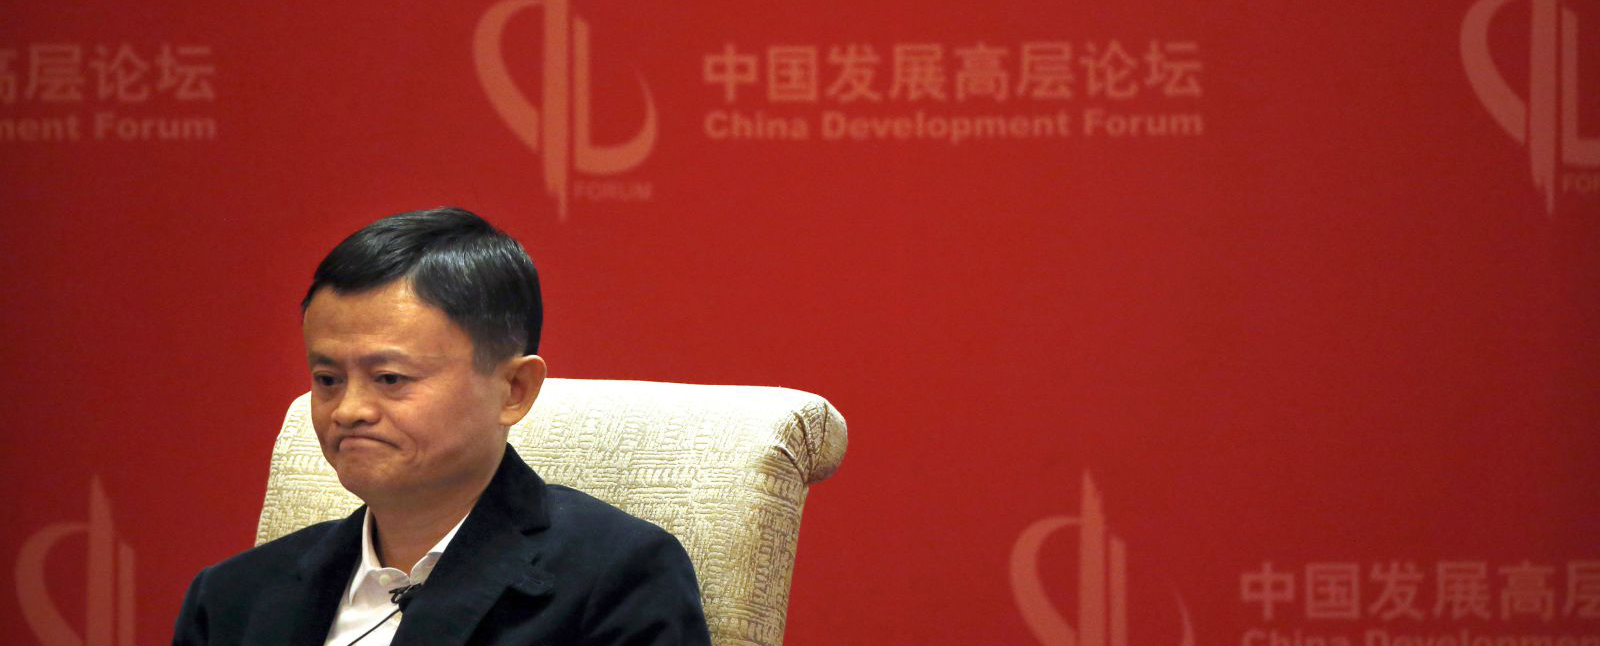 Jack Ma: Counterclaim on Counterfeits